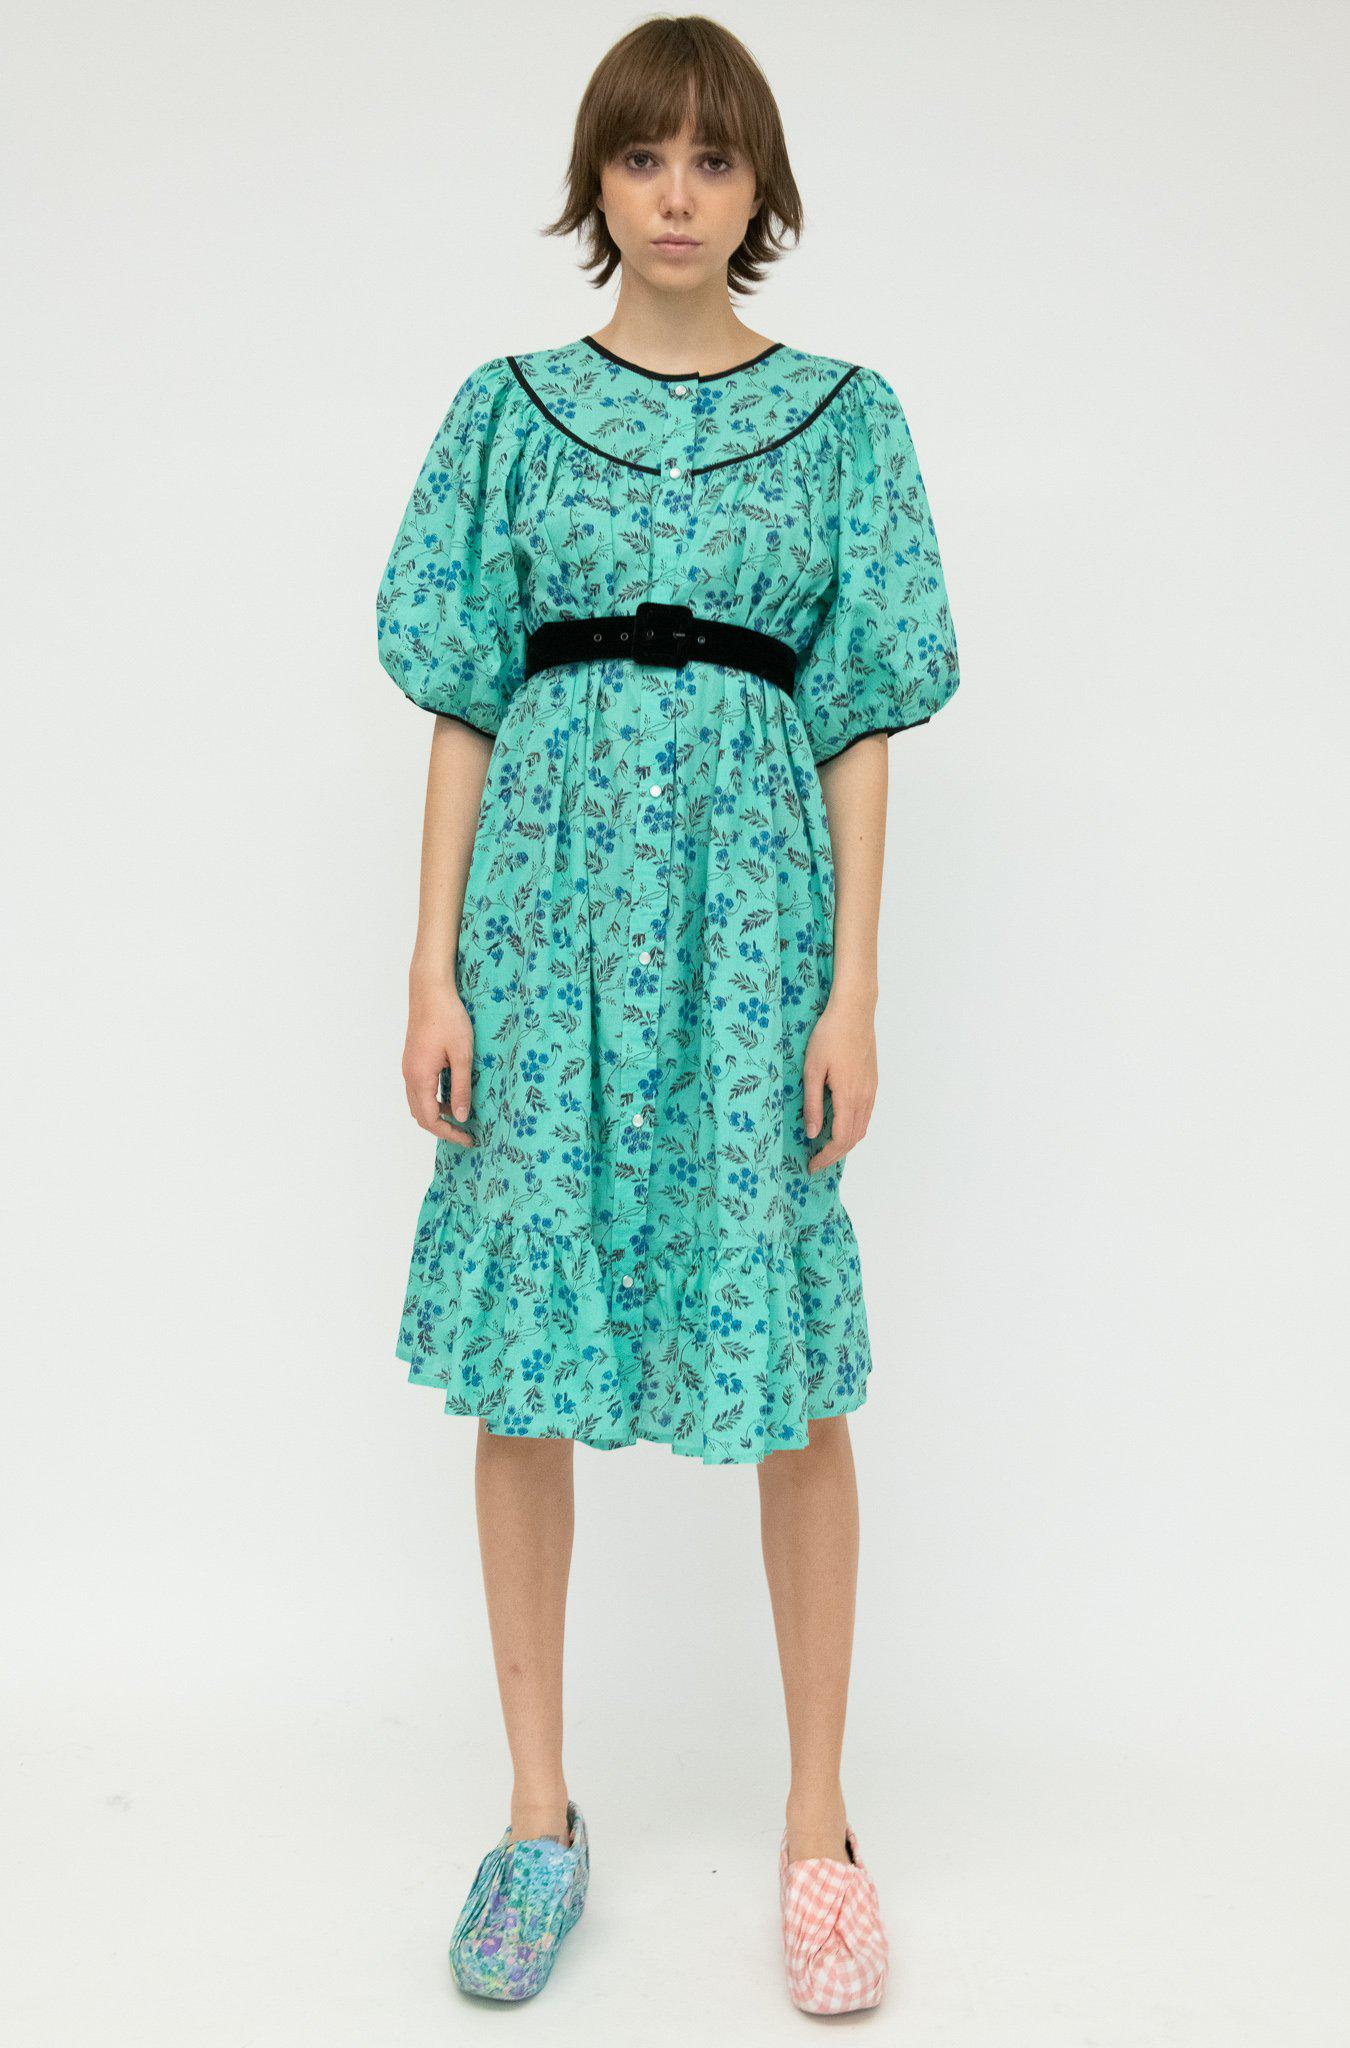 Snap Housedress in Green Floral